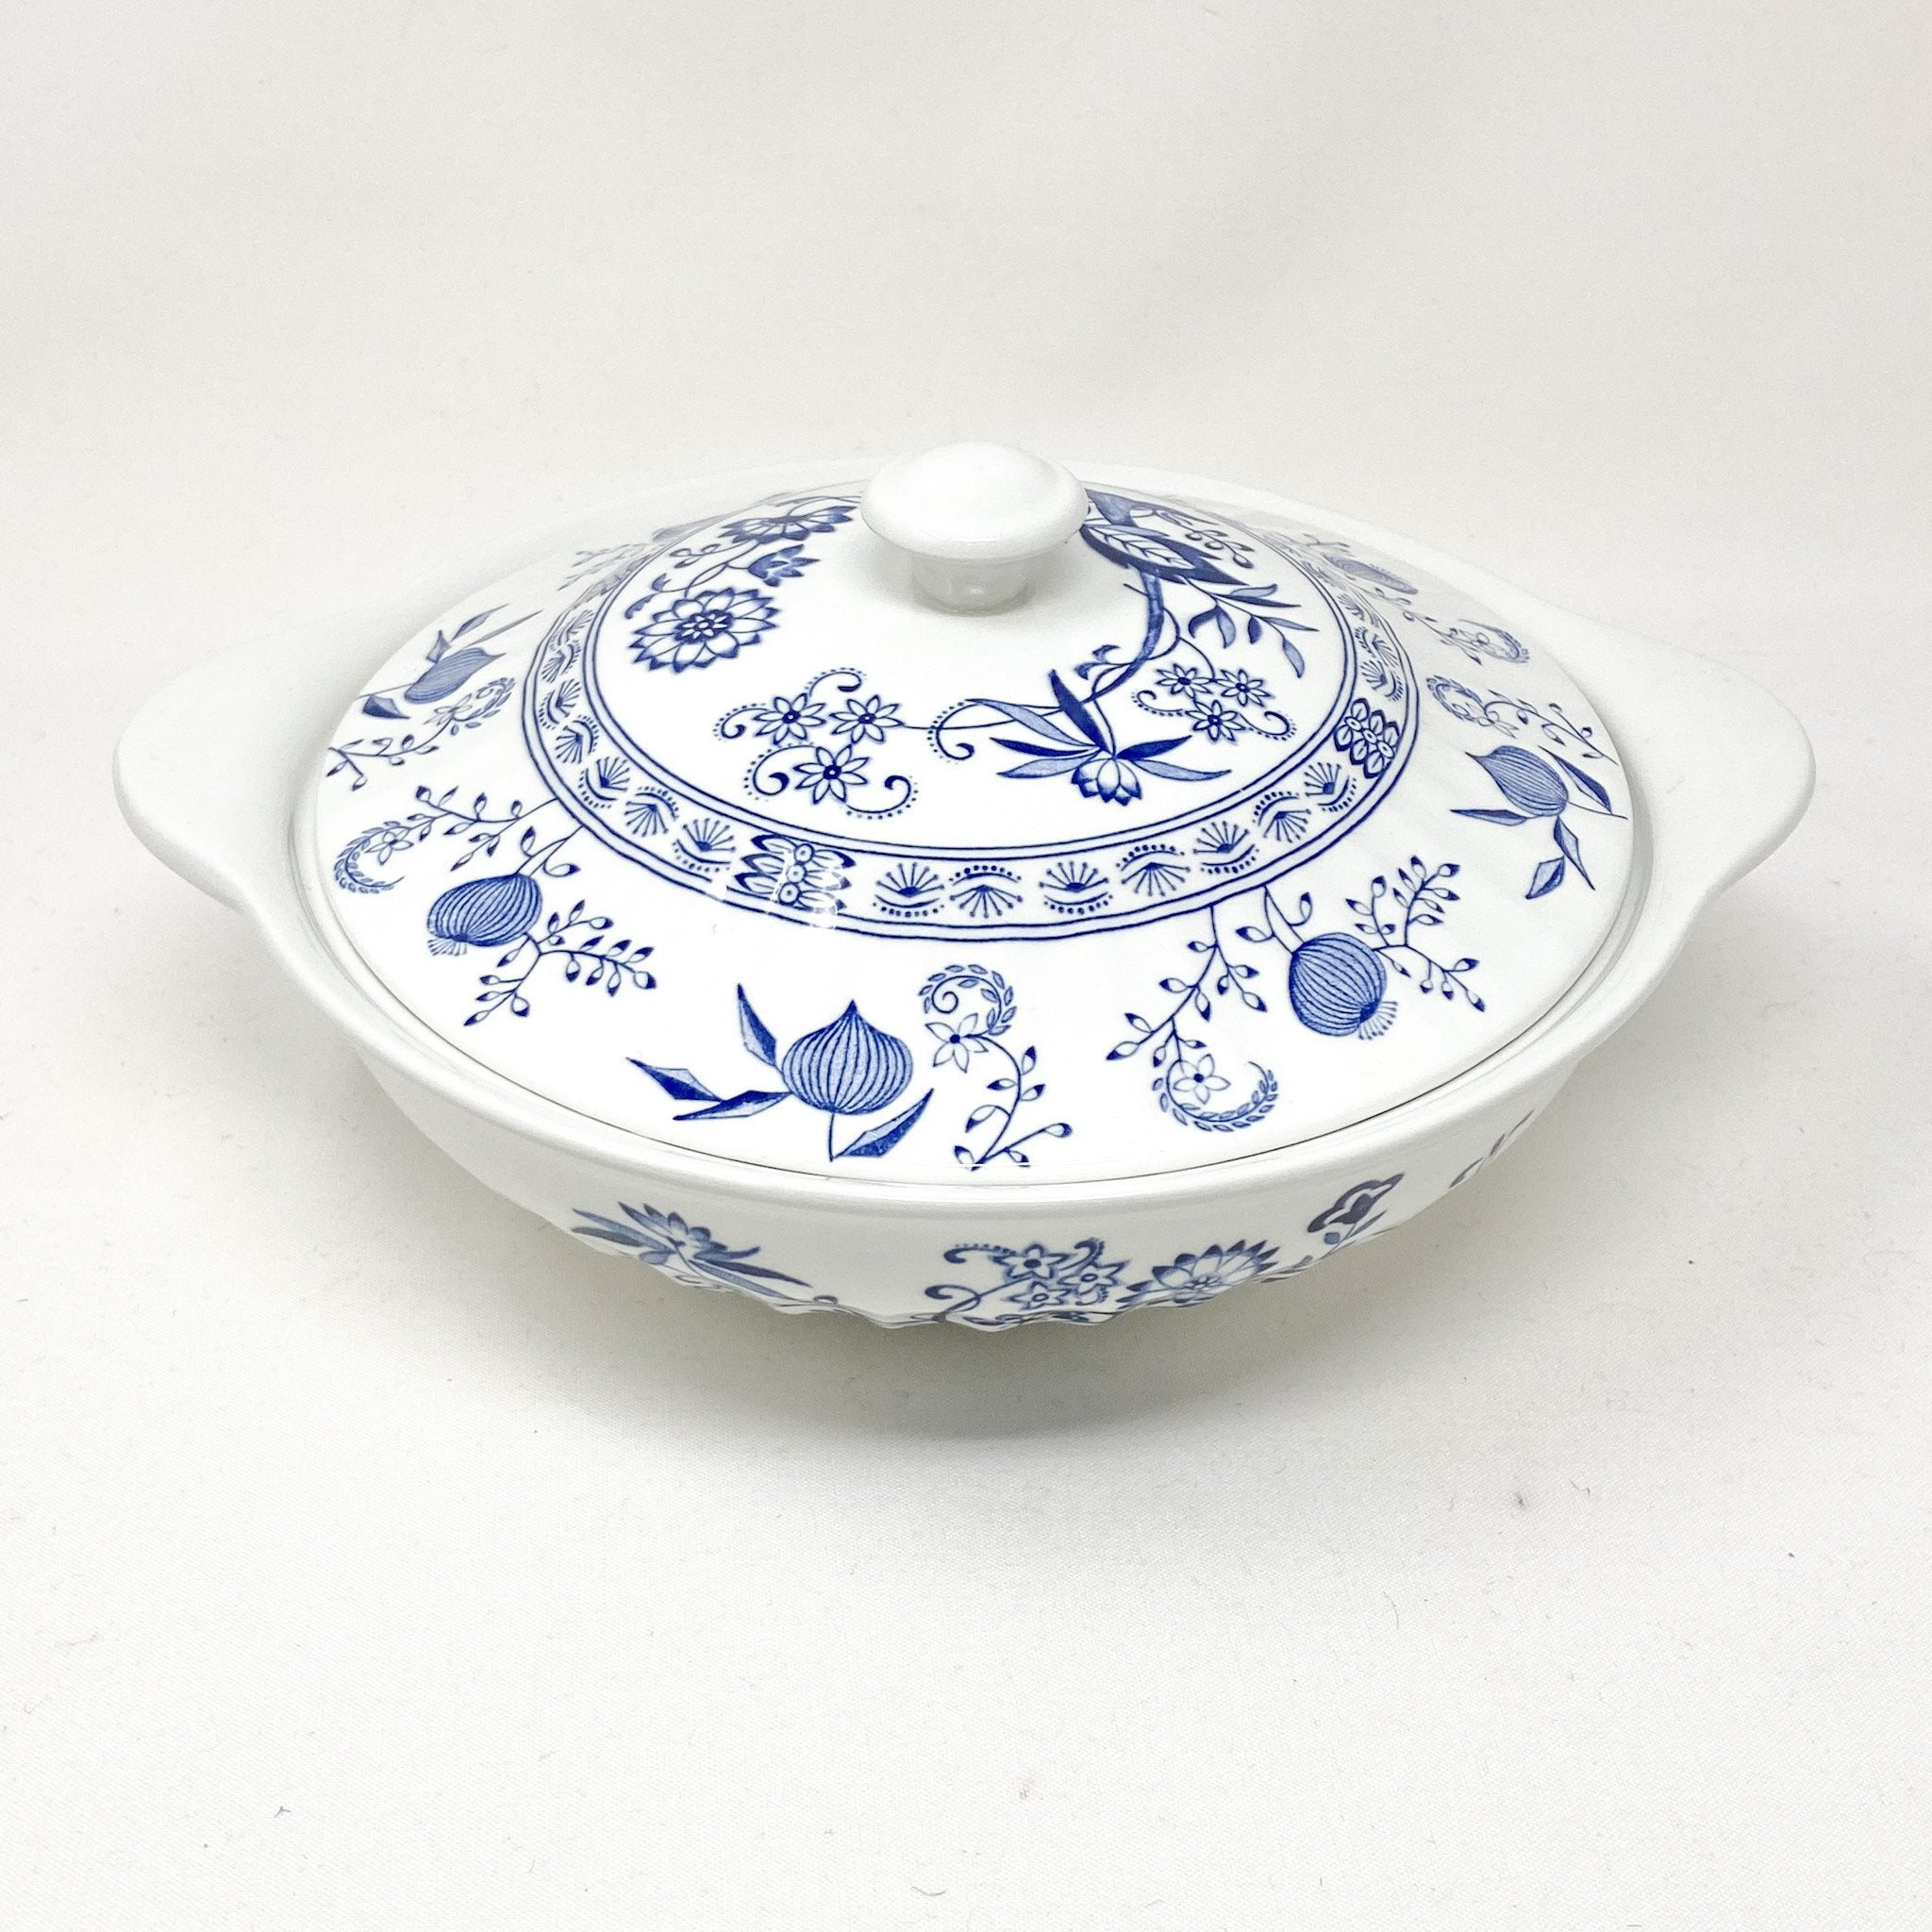 top view of Signature Blue & White | Casserole Dish | The Brooklyn Teacup